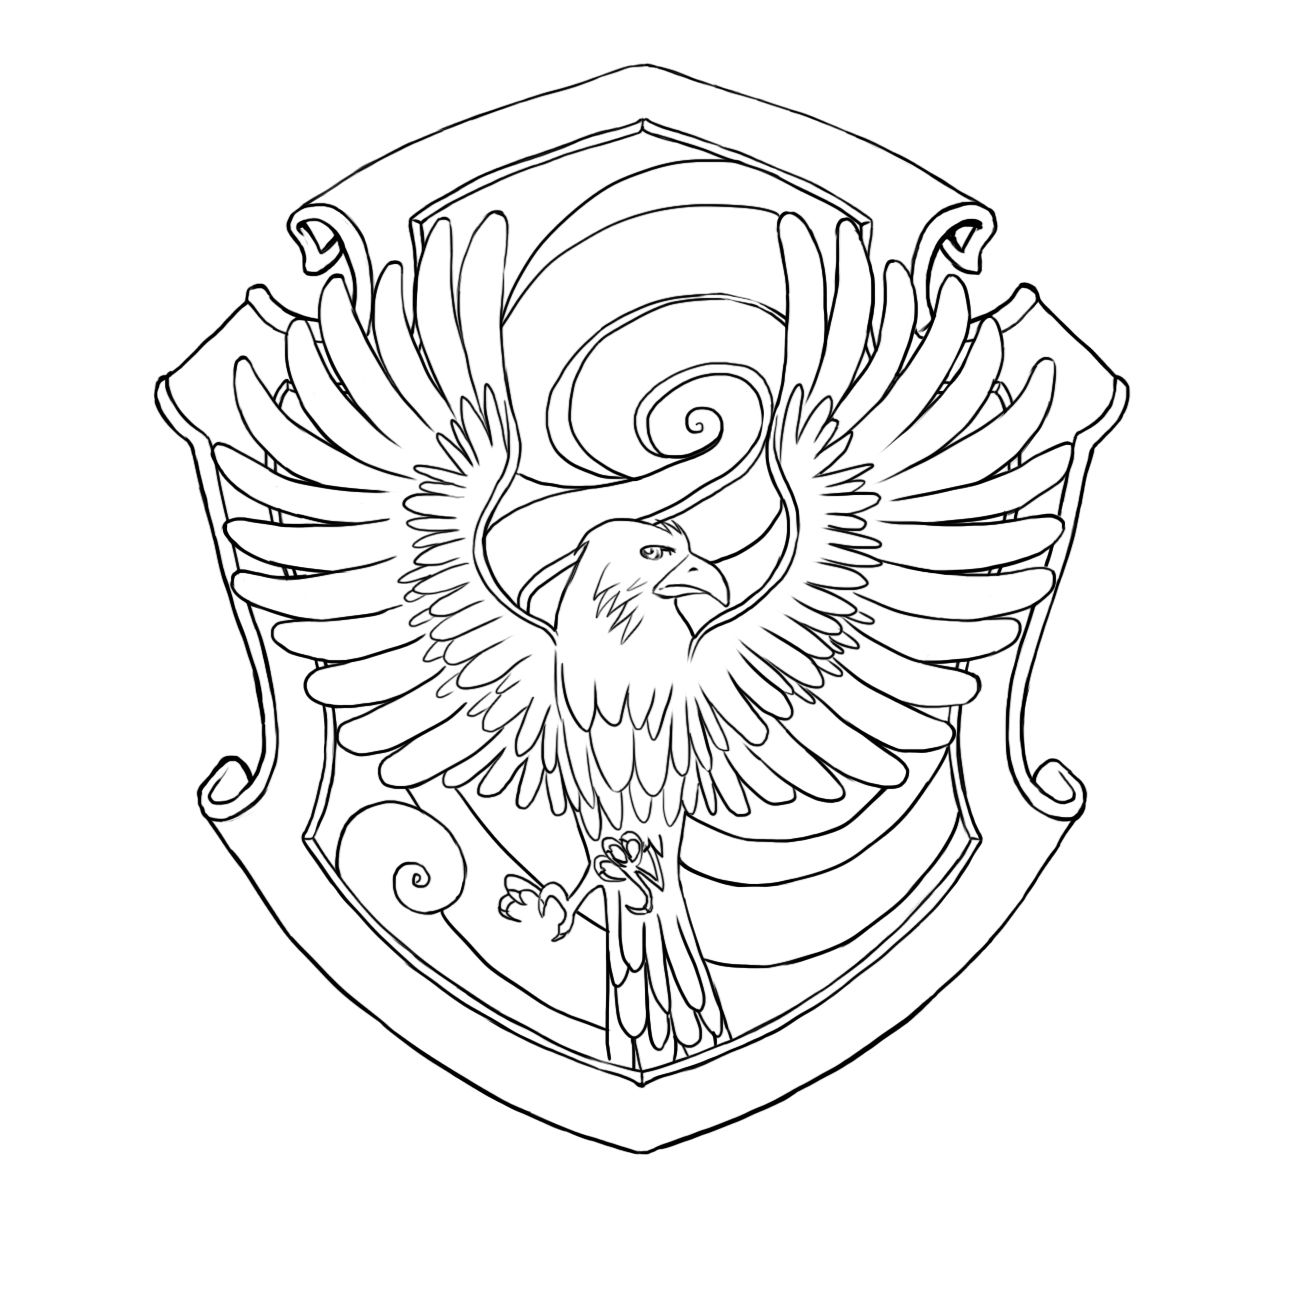 Pottermore Insider Harry Potter Coloring Pages Harry Potter Colors Harry Potter Drawings